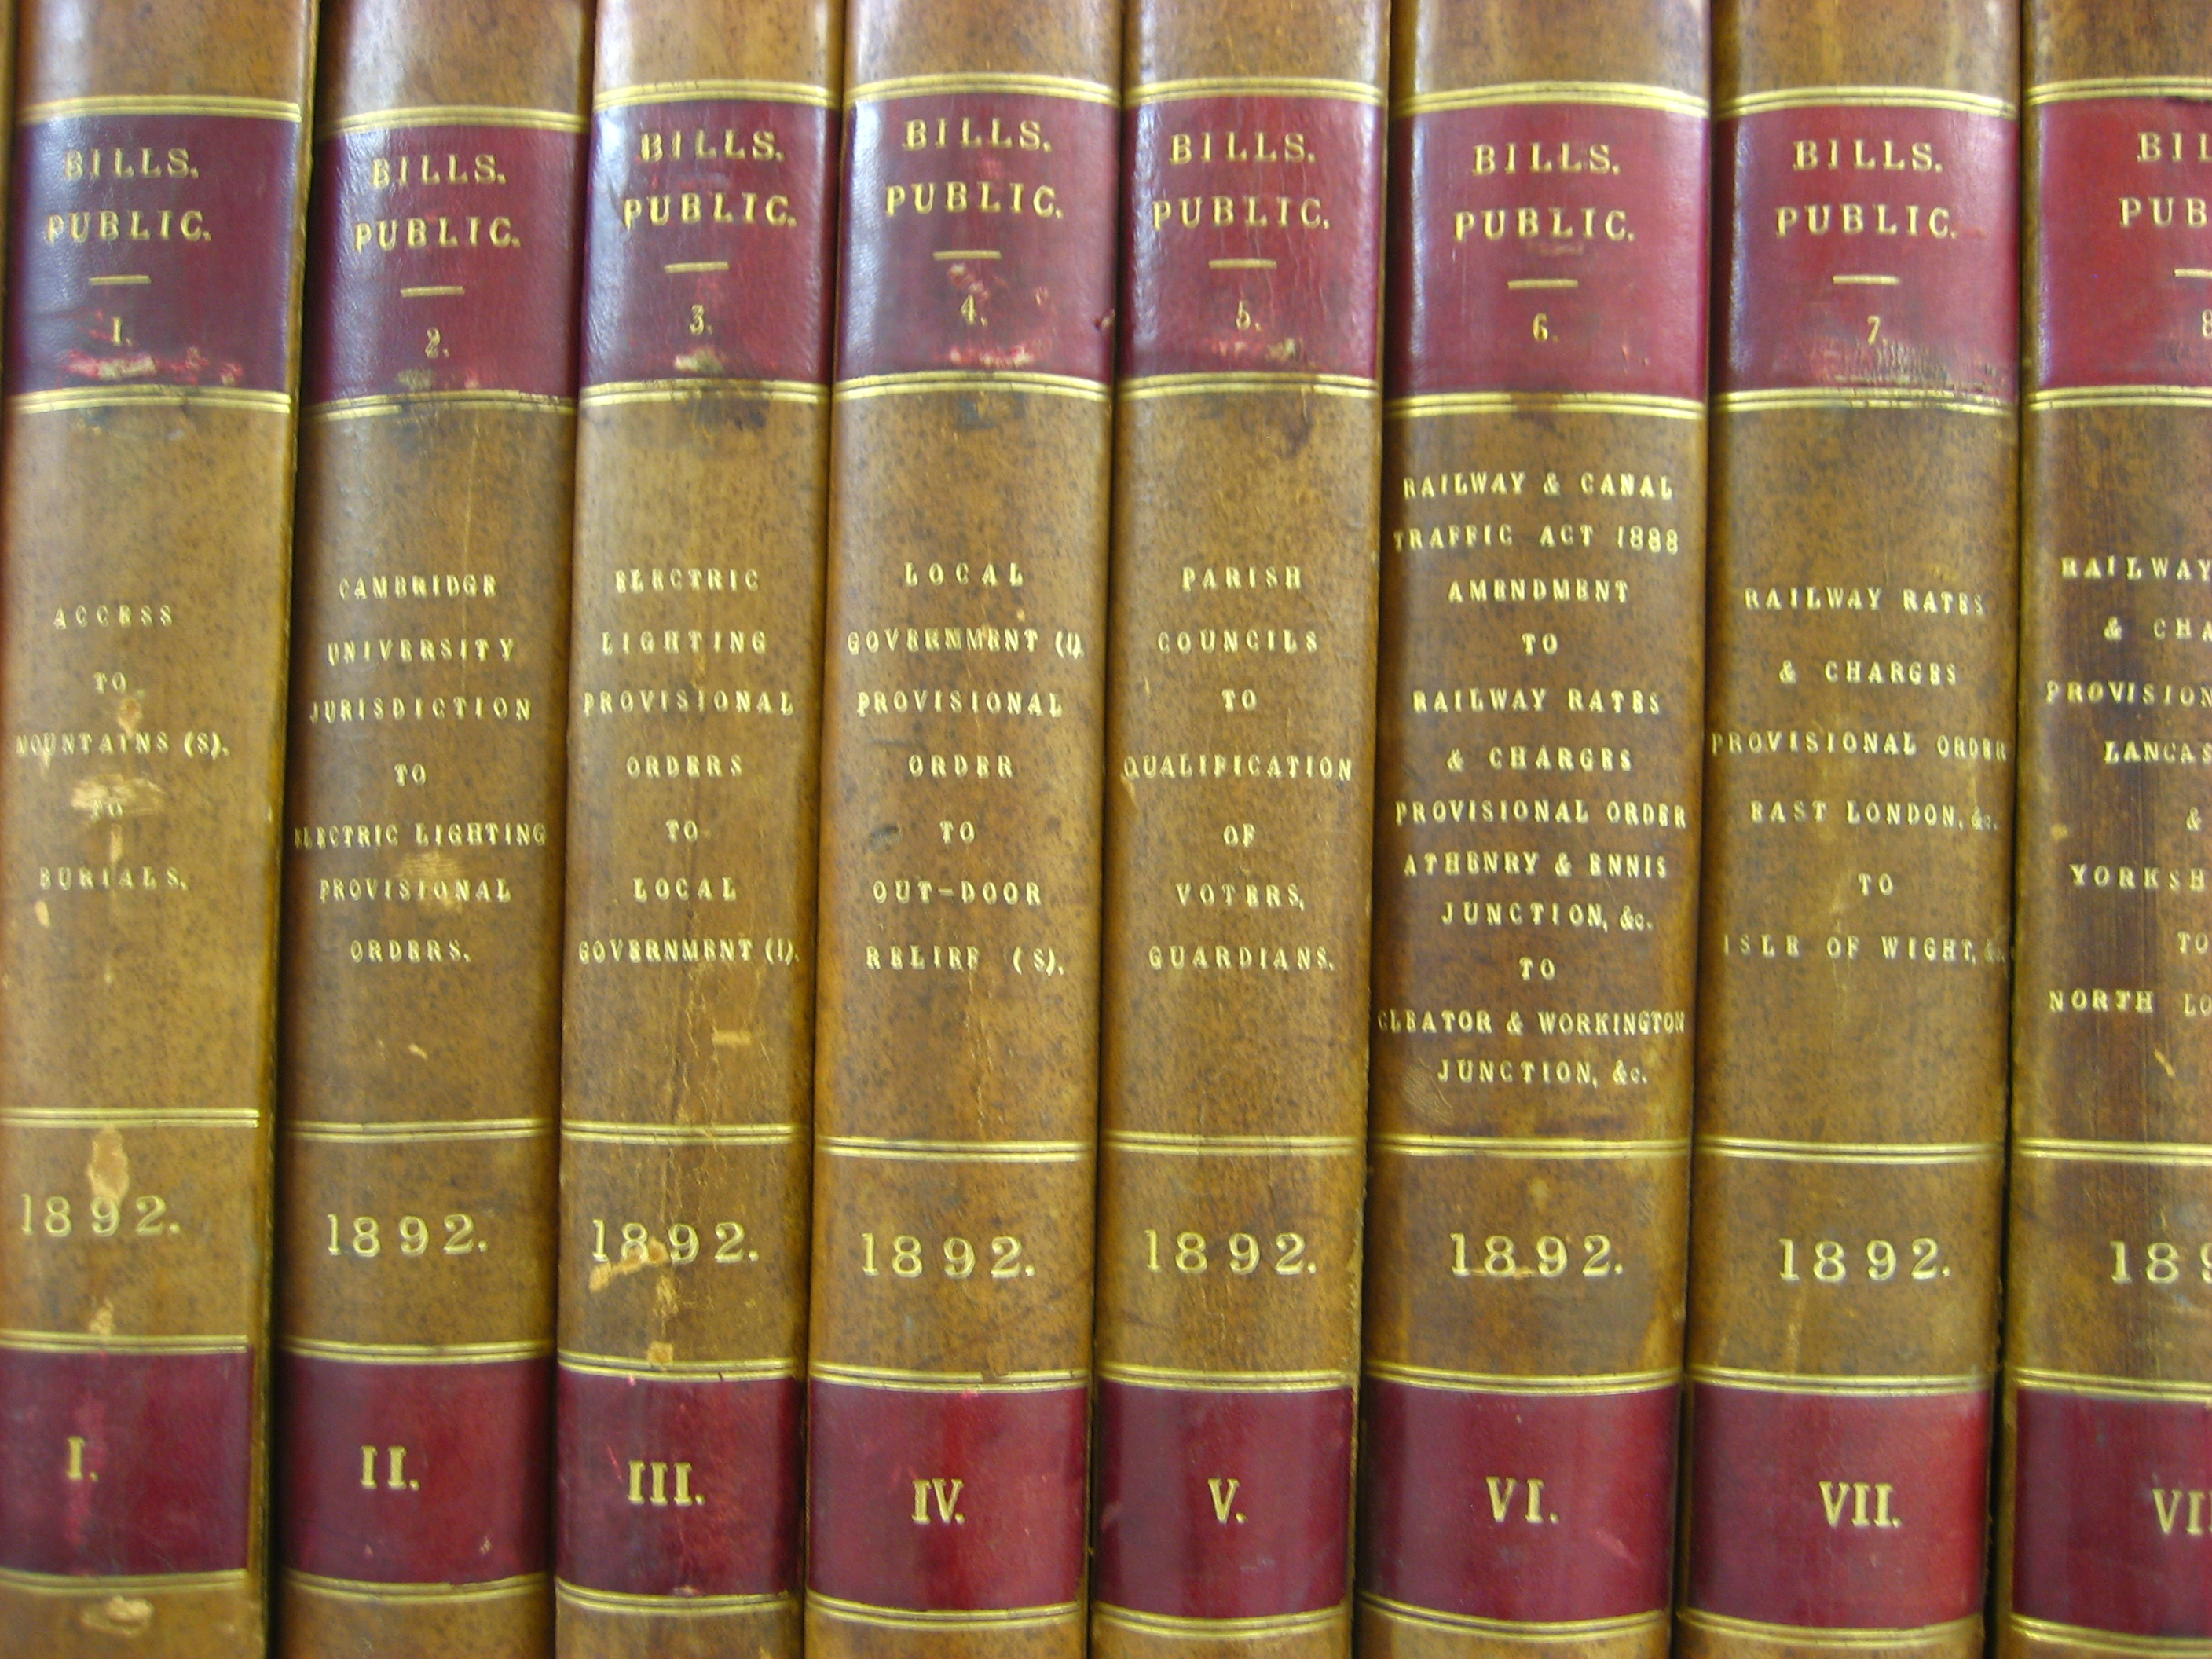 Image shows nineteenth century parliamentary papers in bound volumes on a bookshelf